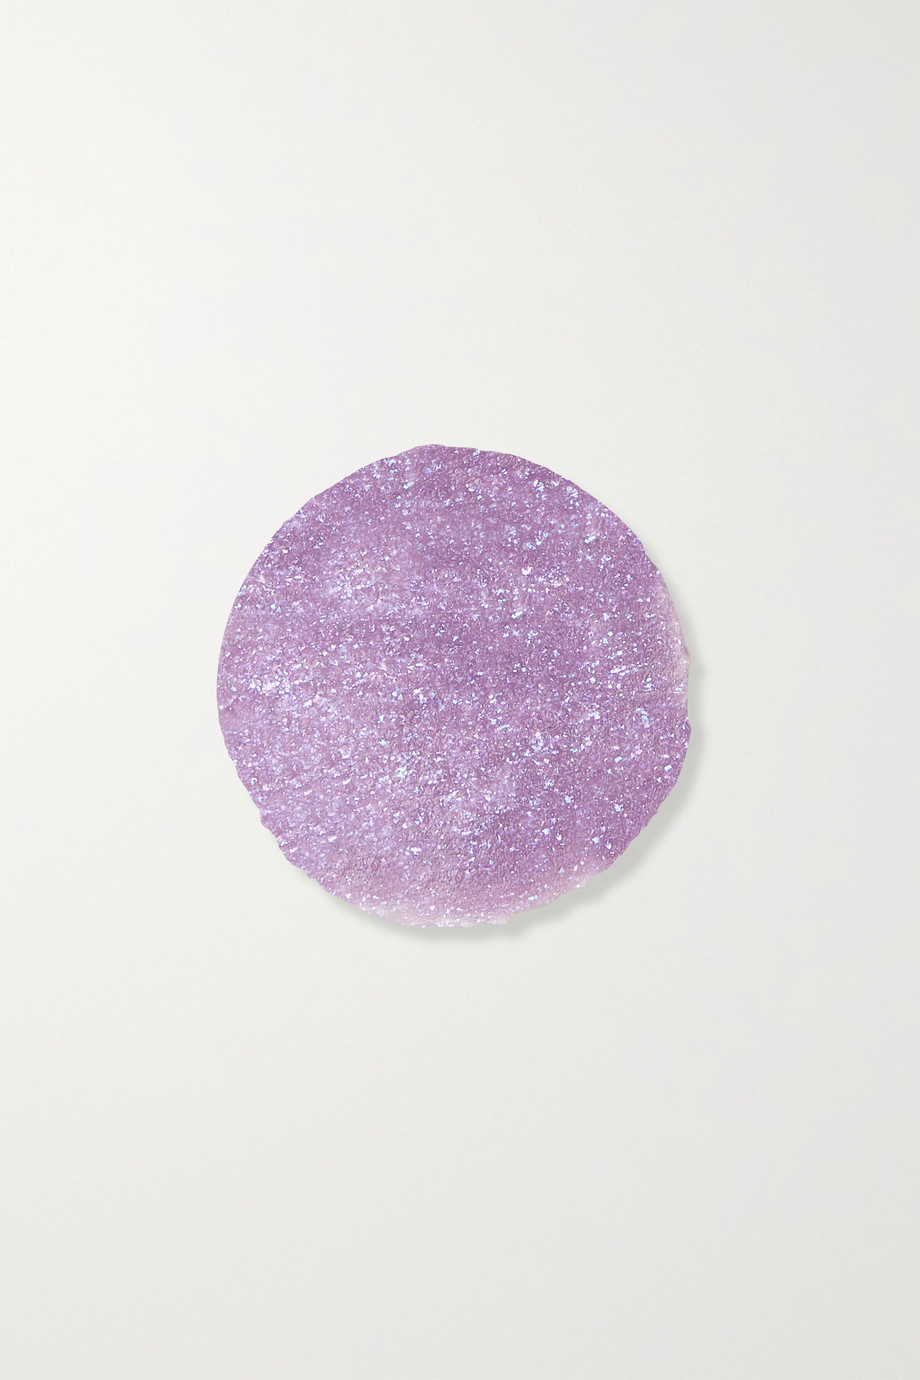 Pat McGrath Labs Lip Fetish Astral Lip Balm - Amethyst